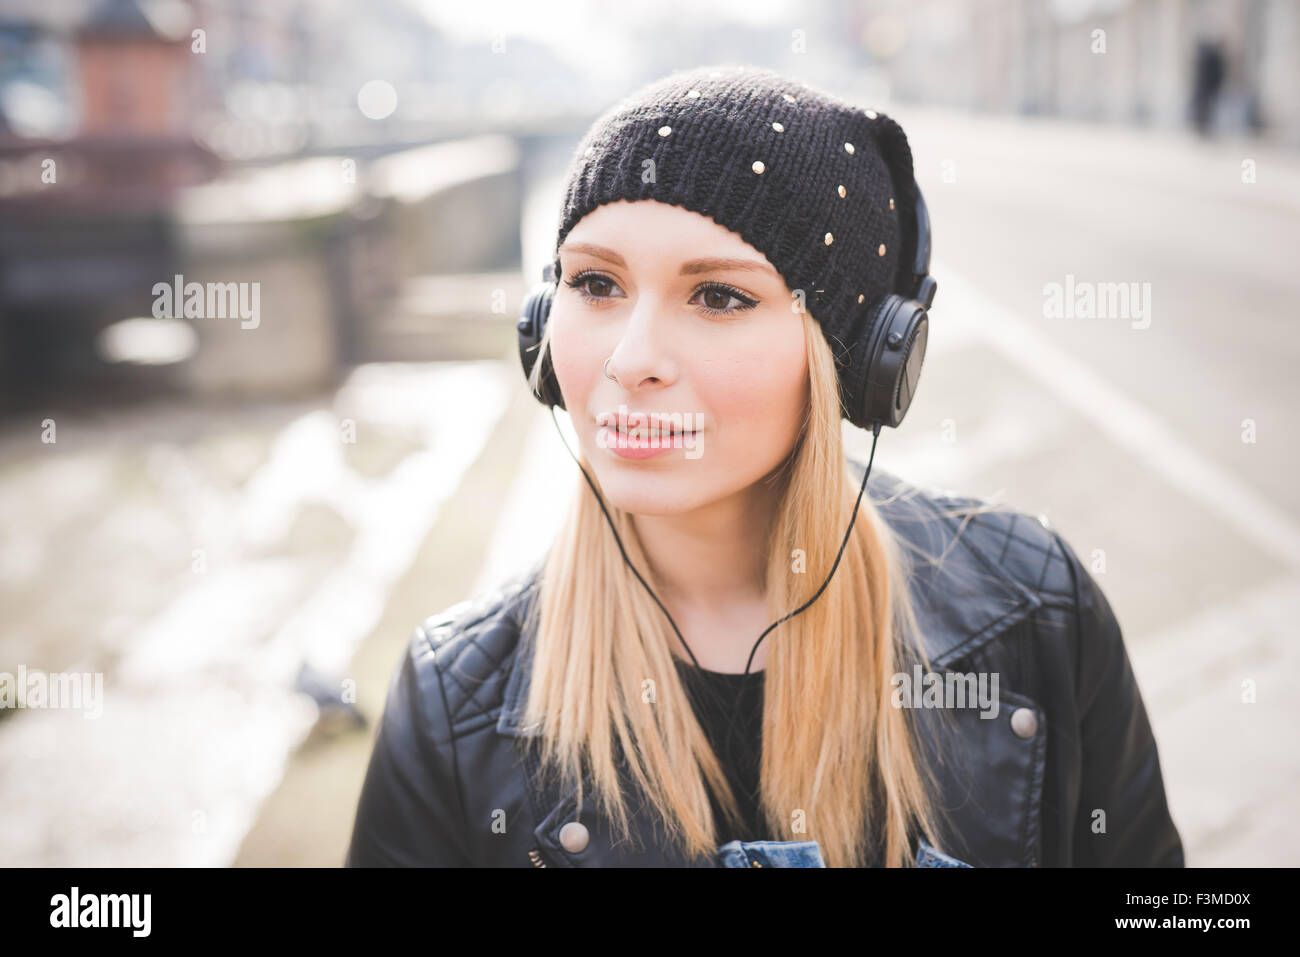 Portrait of young beautiful blonde straight hair woman in the city with headphones listening to music, overlooking - Stock Image